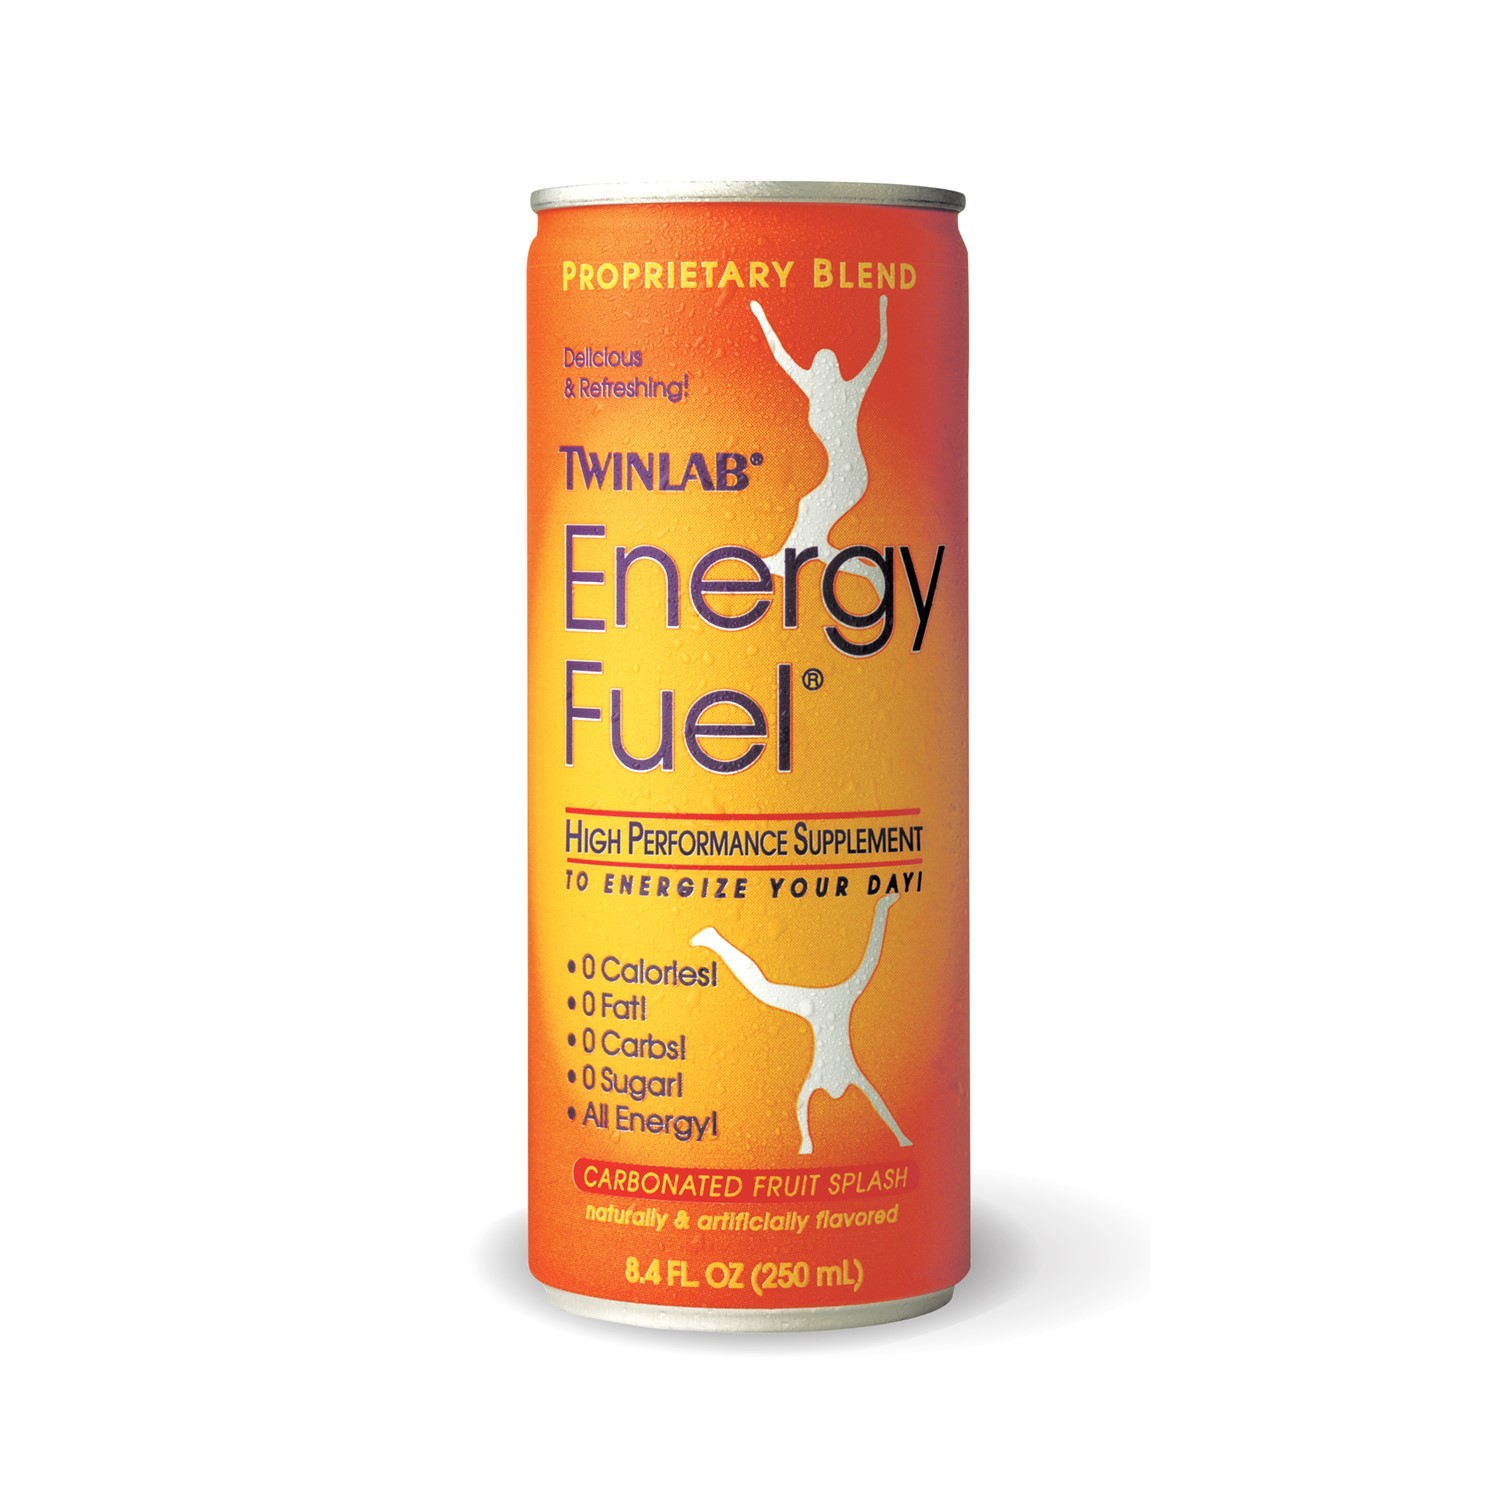 Twinlab Energy Fuel Fruit Splash 8.4 fl oz